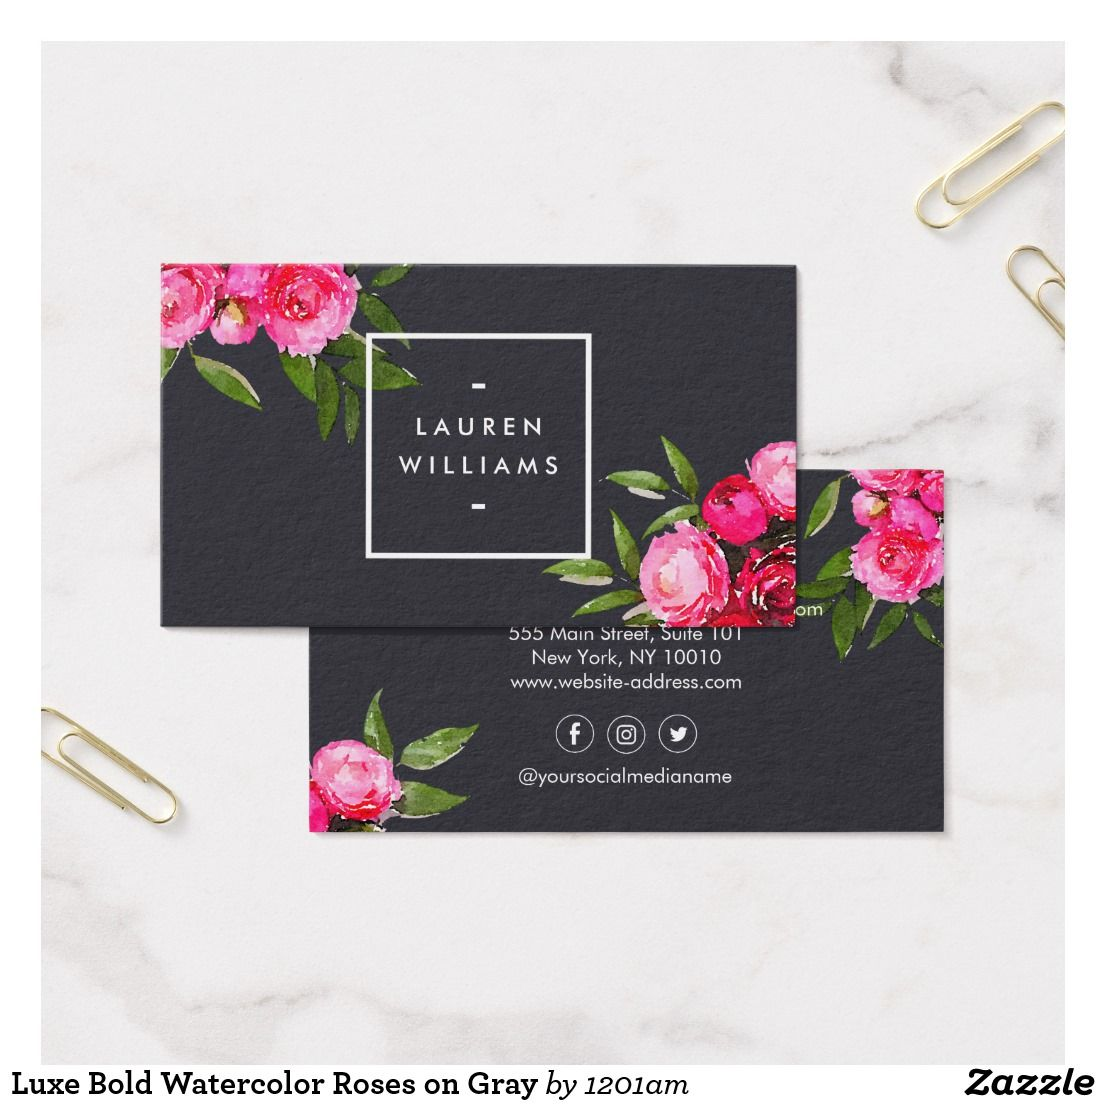 Luxe Bold Watercolor Roses On Gray Business Card Zazzle Com